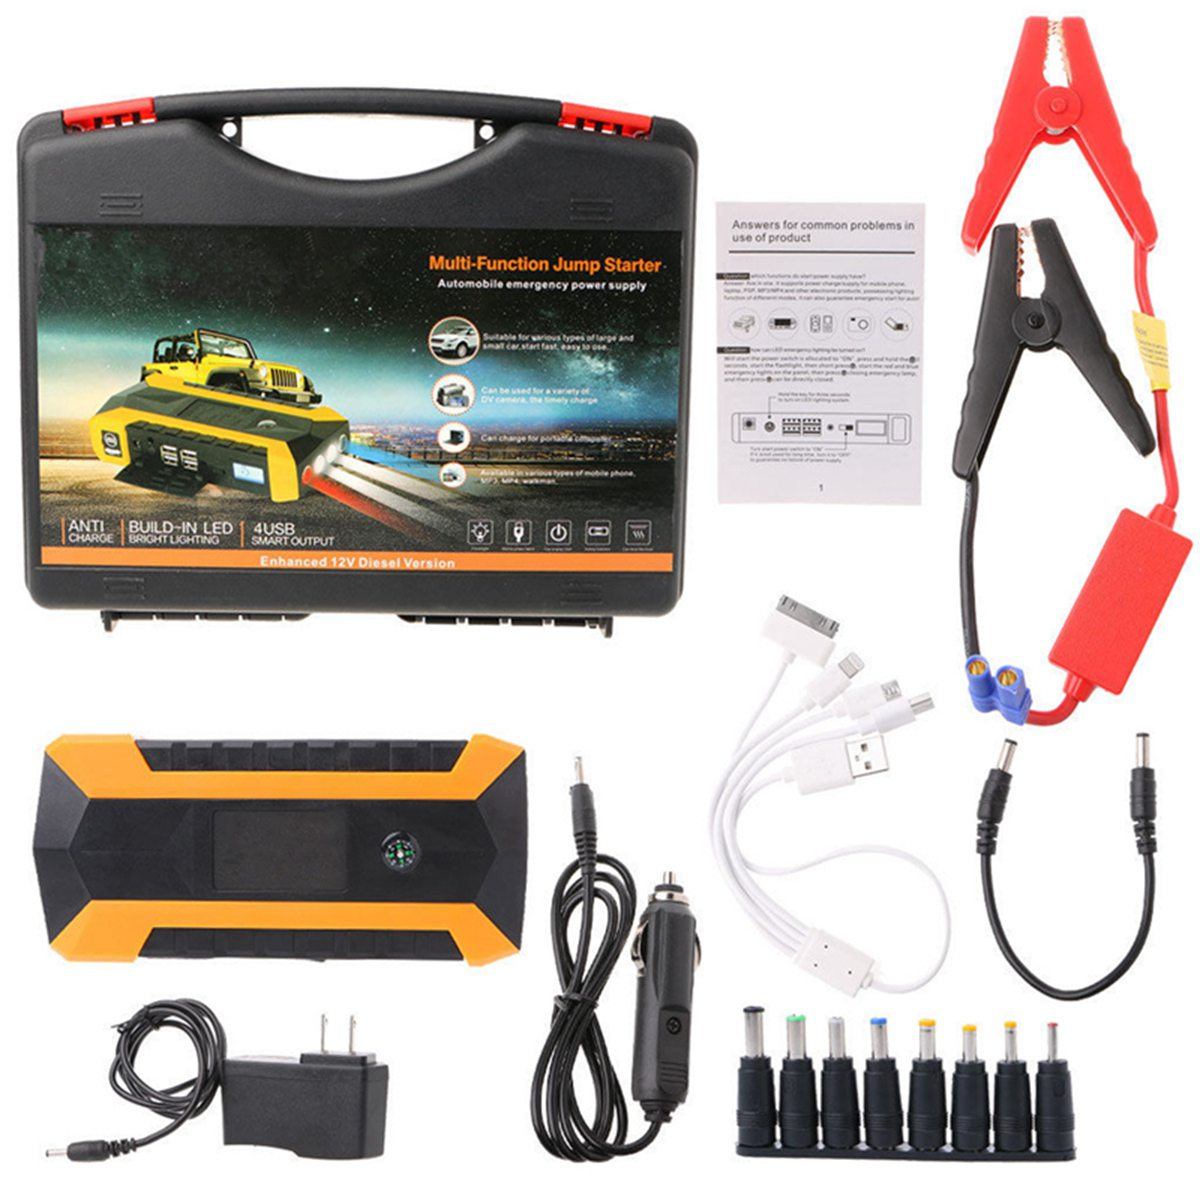 89800mAh Car Jump Starter 12V 4USB 600A Portable Car Battery Booster Charger Booster Power Bank Starting Device Car Starter multifunction jump starter 89800mah 12v 4usb 600a portable car battery booster charger booster power bank starting device